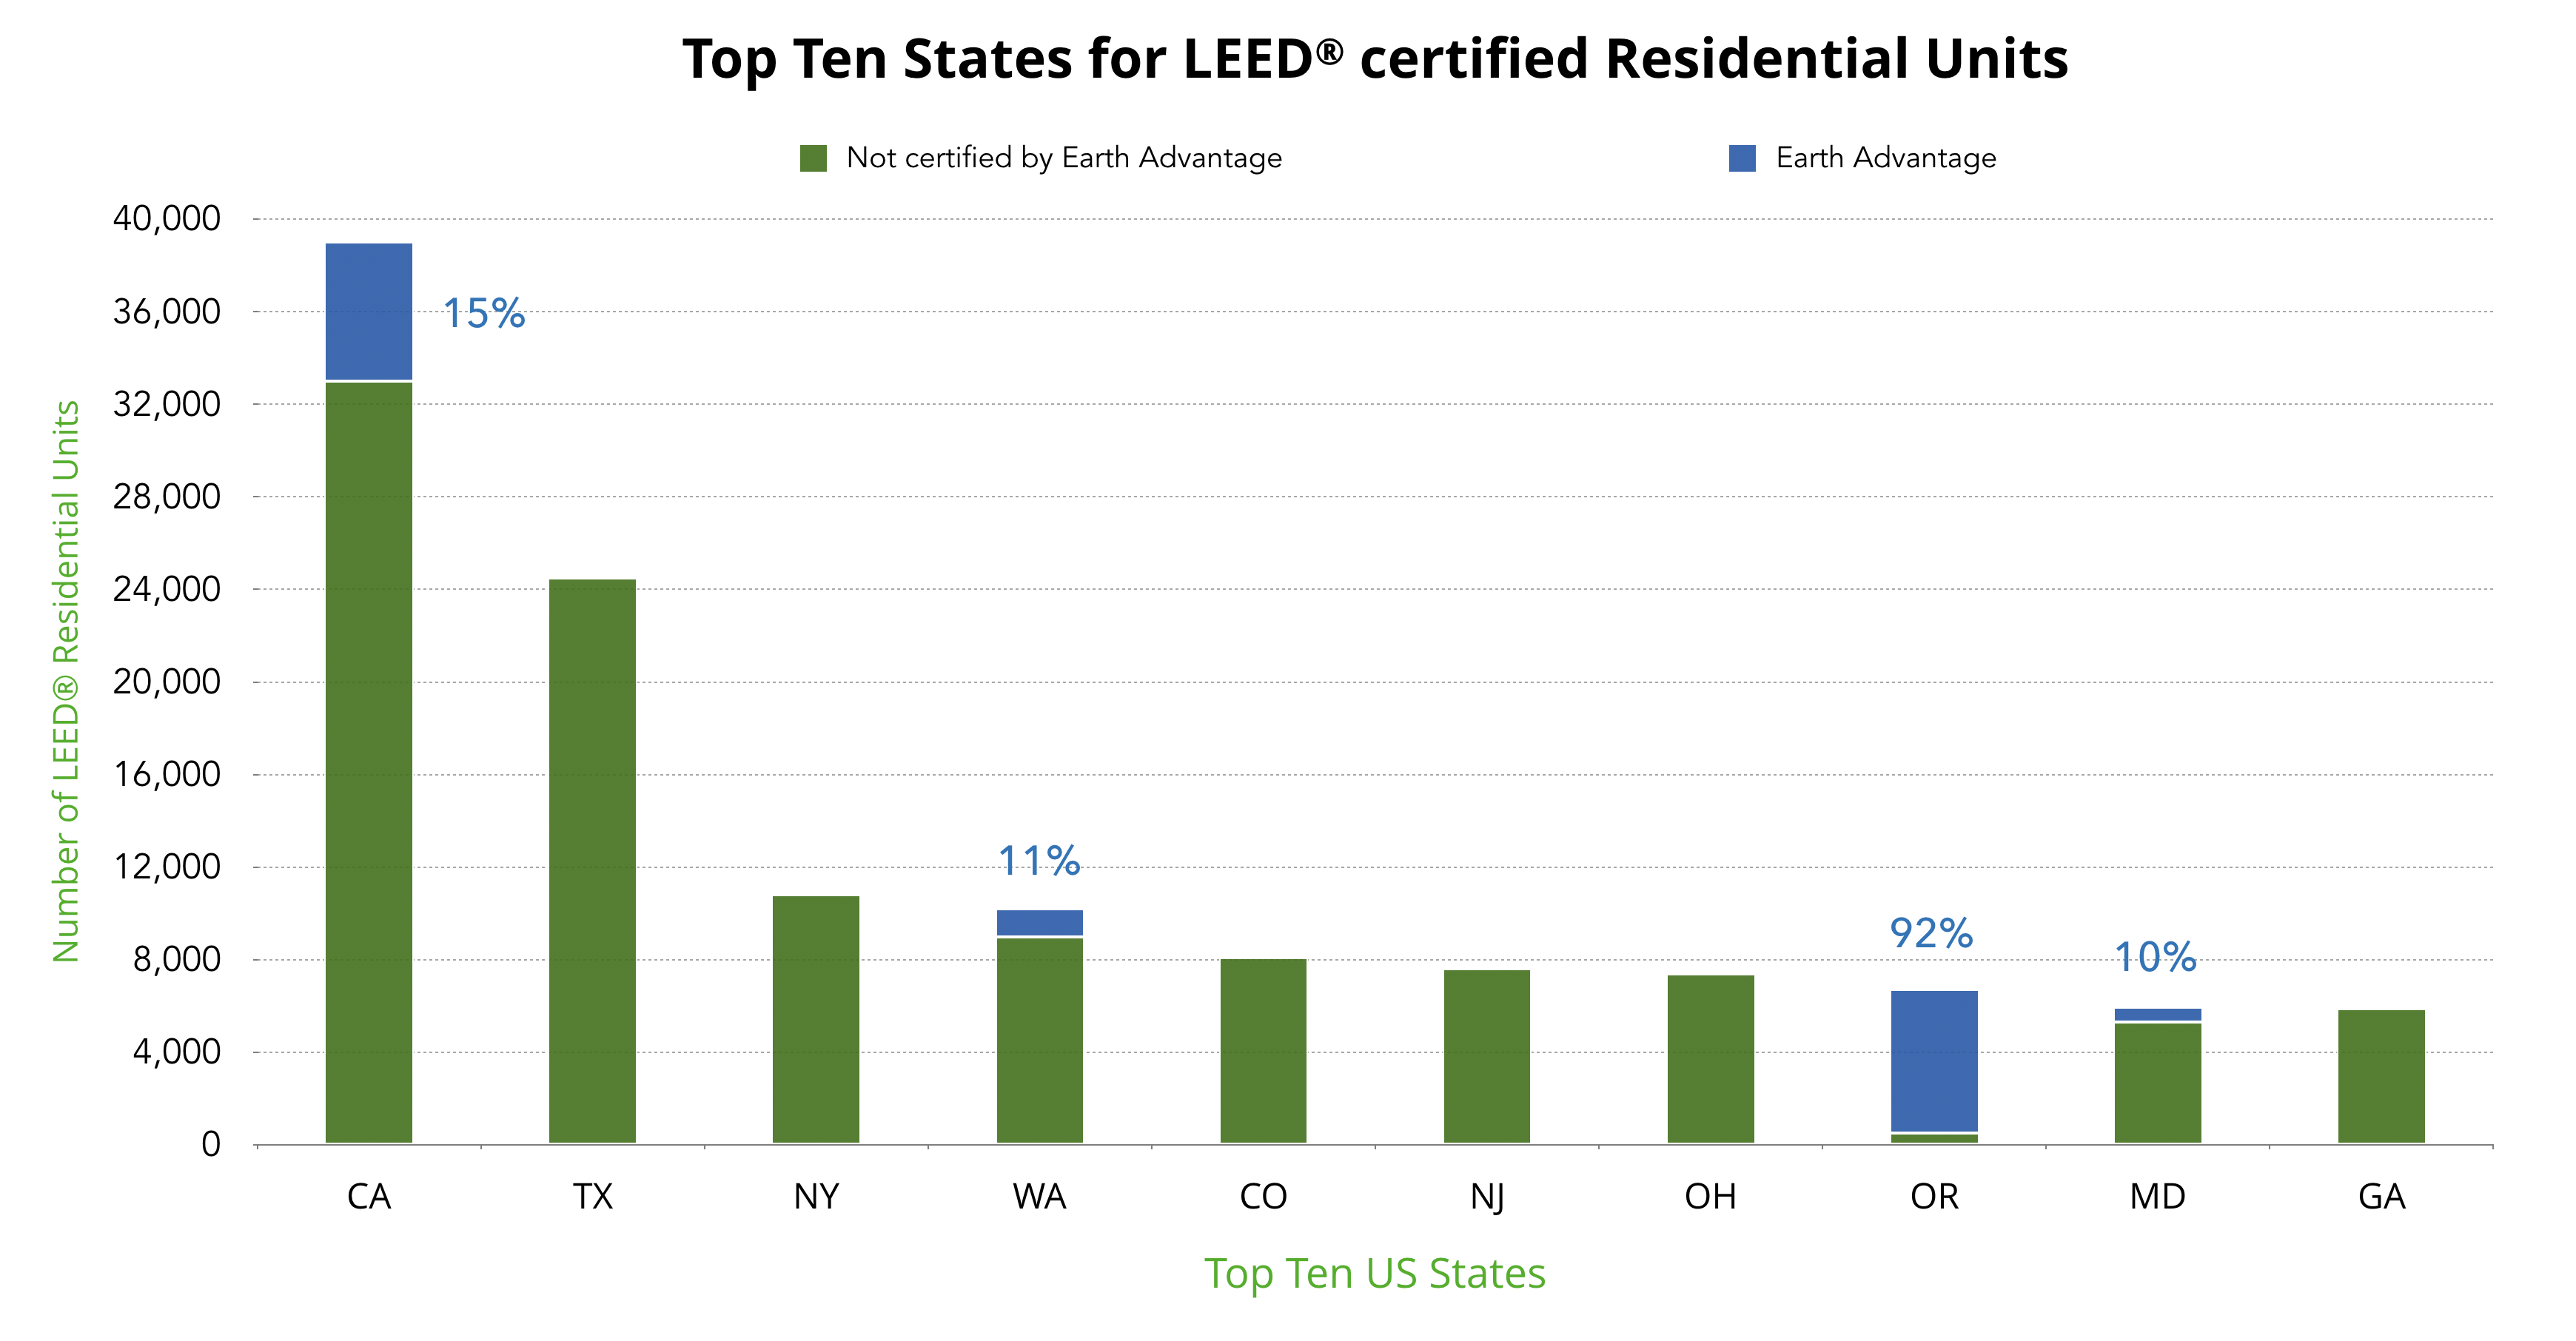 LEED projects in US